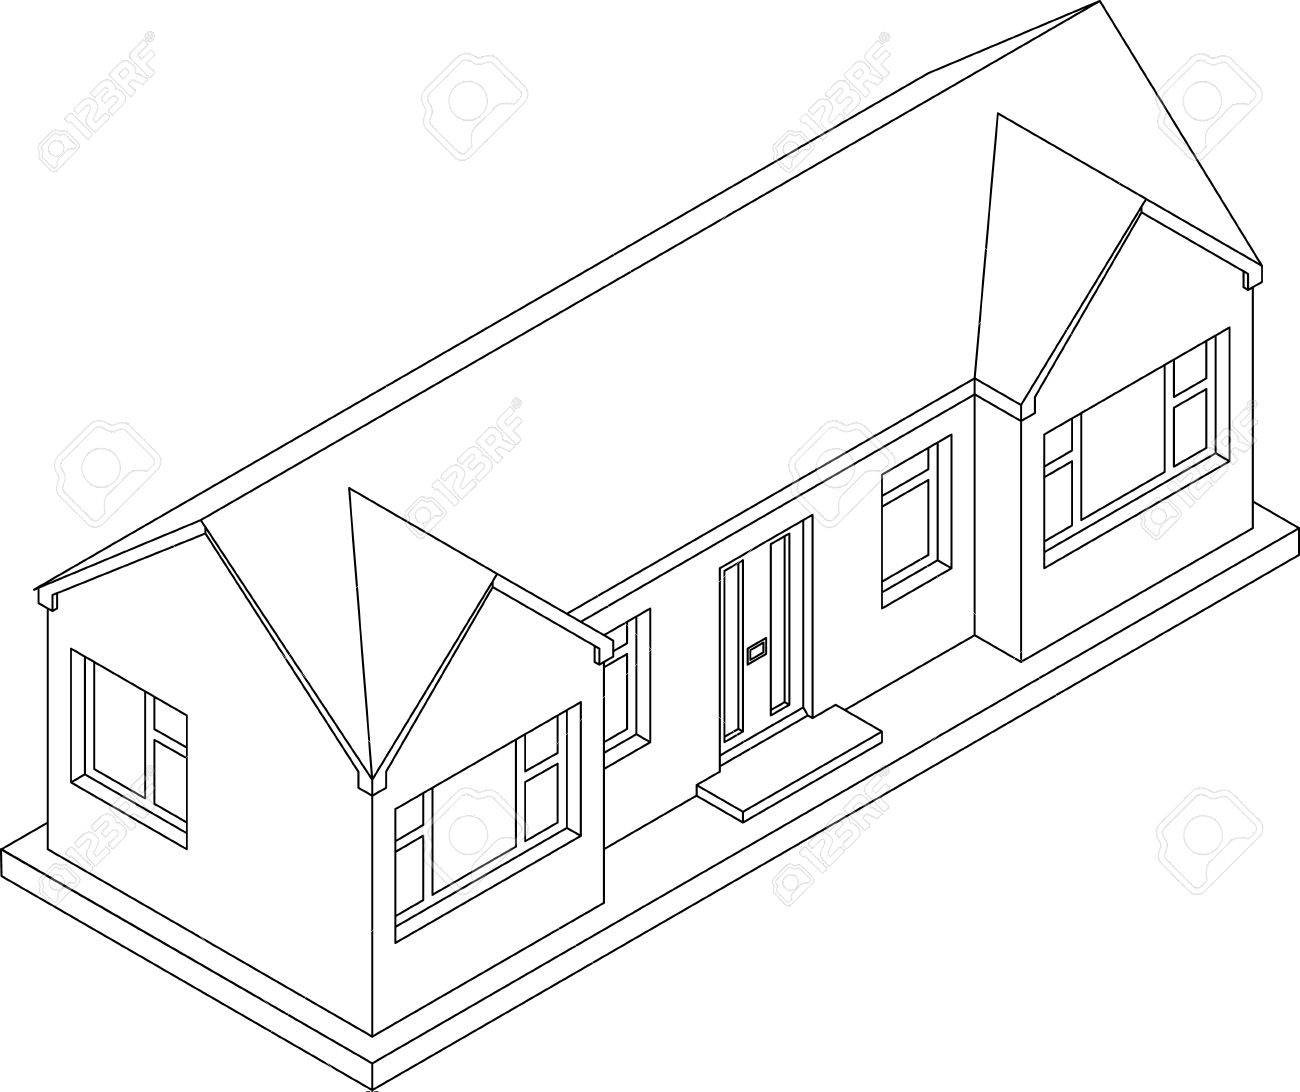 White house drawing at getdrawings free for personal use white big 3d drawings 1300x1092 3d